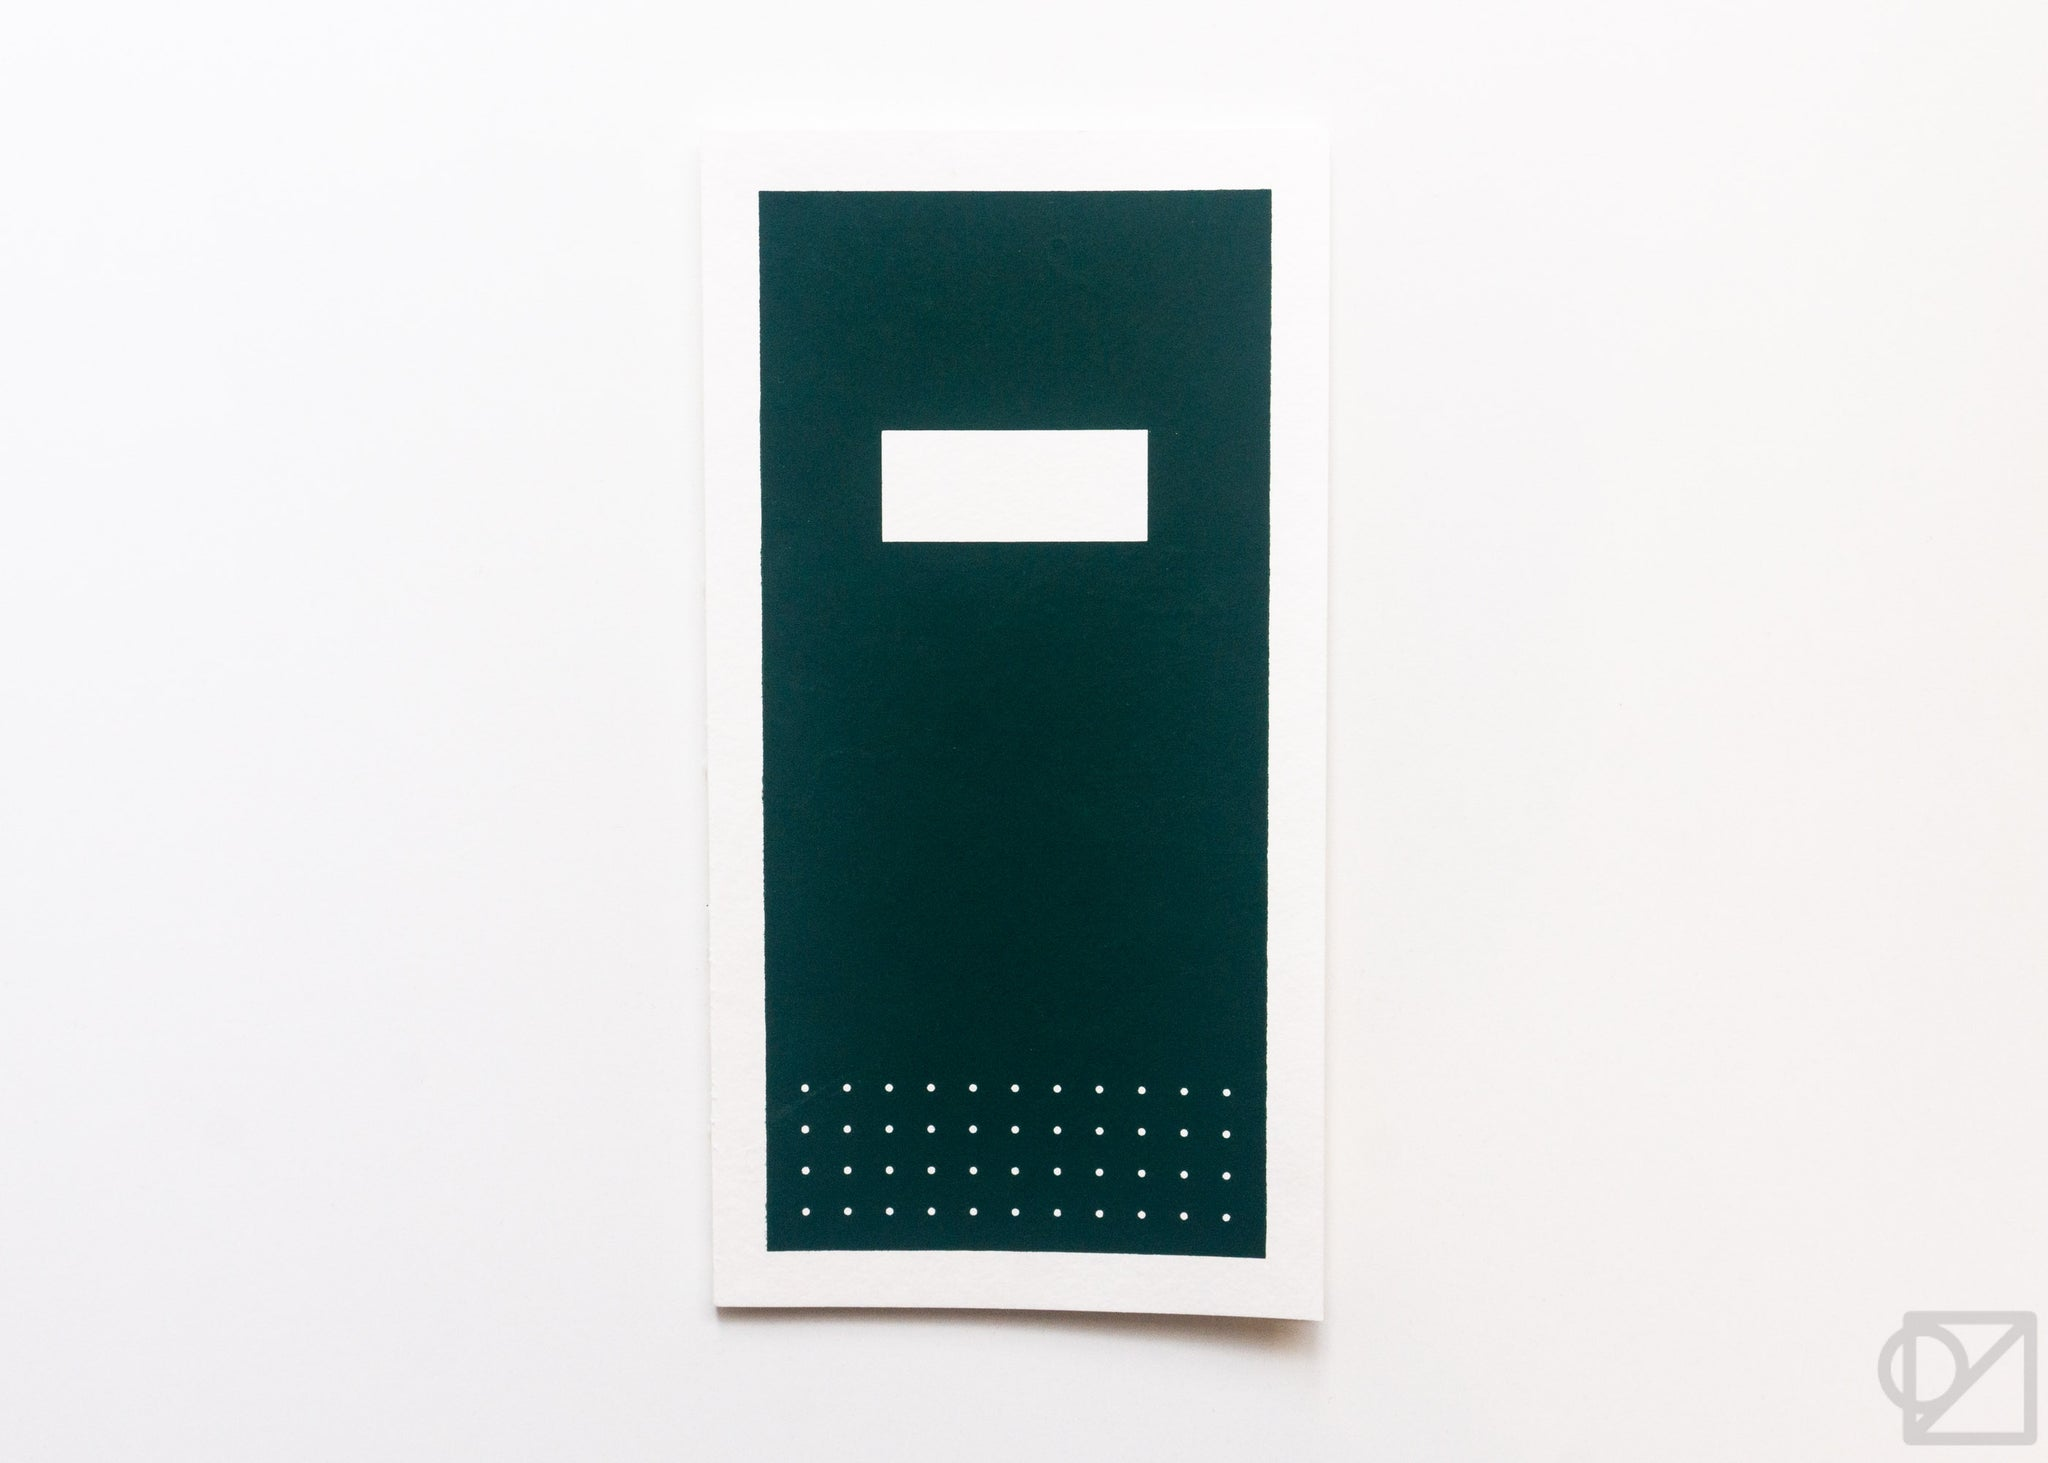 Hanaduri Hanji Paper Travel Notebook Dot Grid